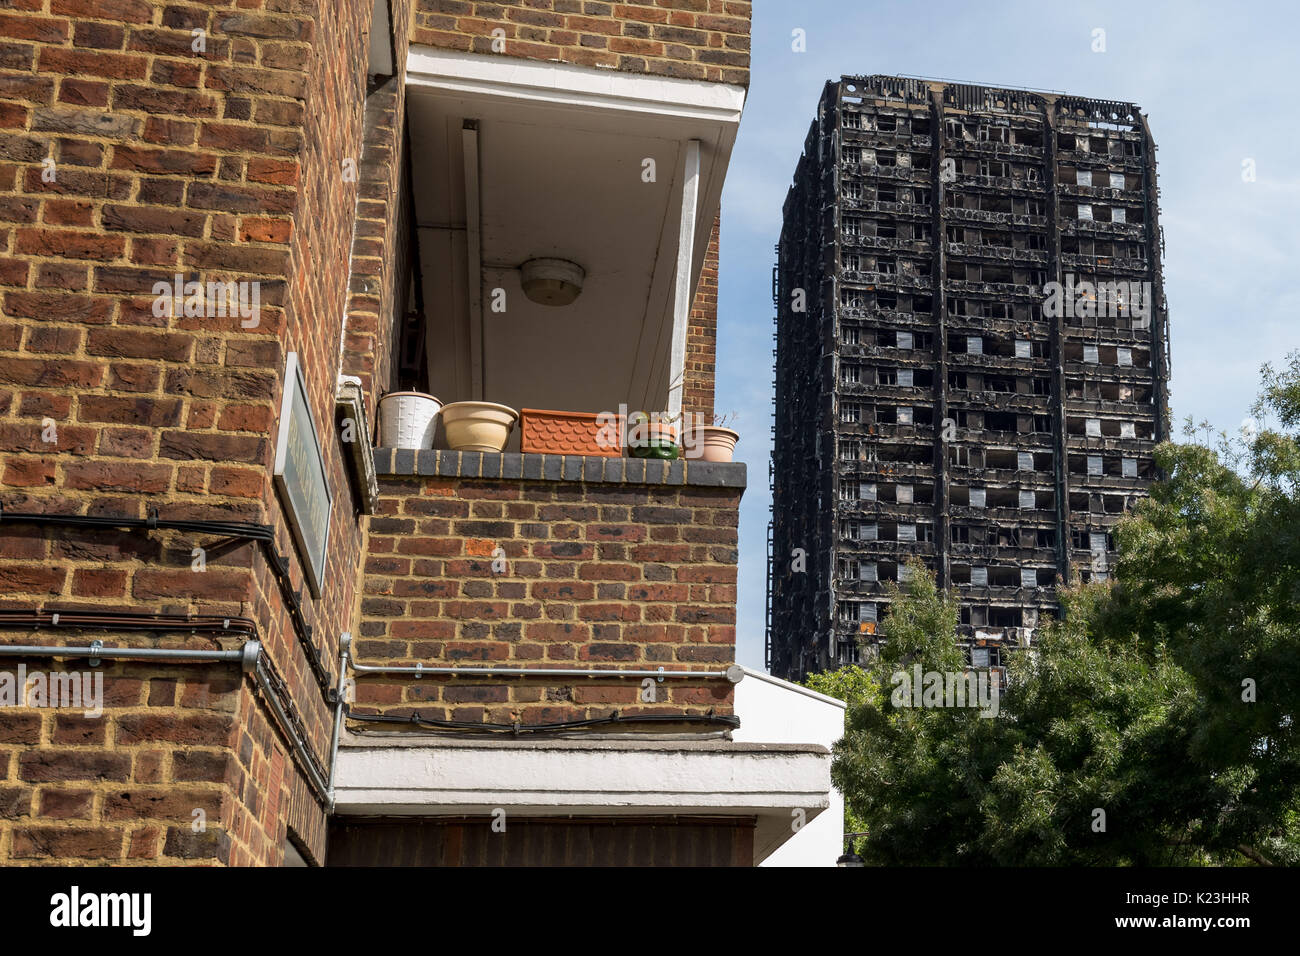 London, UK. 28th Aug, 2017. Grenfell Tower. The Grenfell Tower fire occurred on 14 June 2017 at the 24-storey Grenfell Tower block of public housing flats in North Kensington, Royal Borough of Kensington and Chelsea, West London. Credit: Guy Corbishley/Alamy Live News - Stock Image